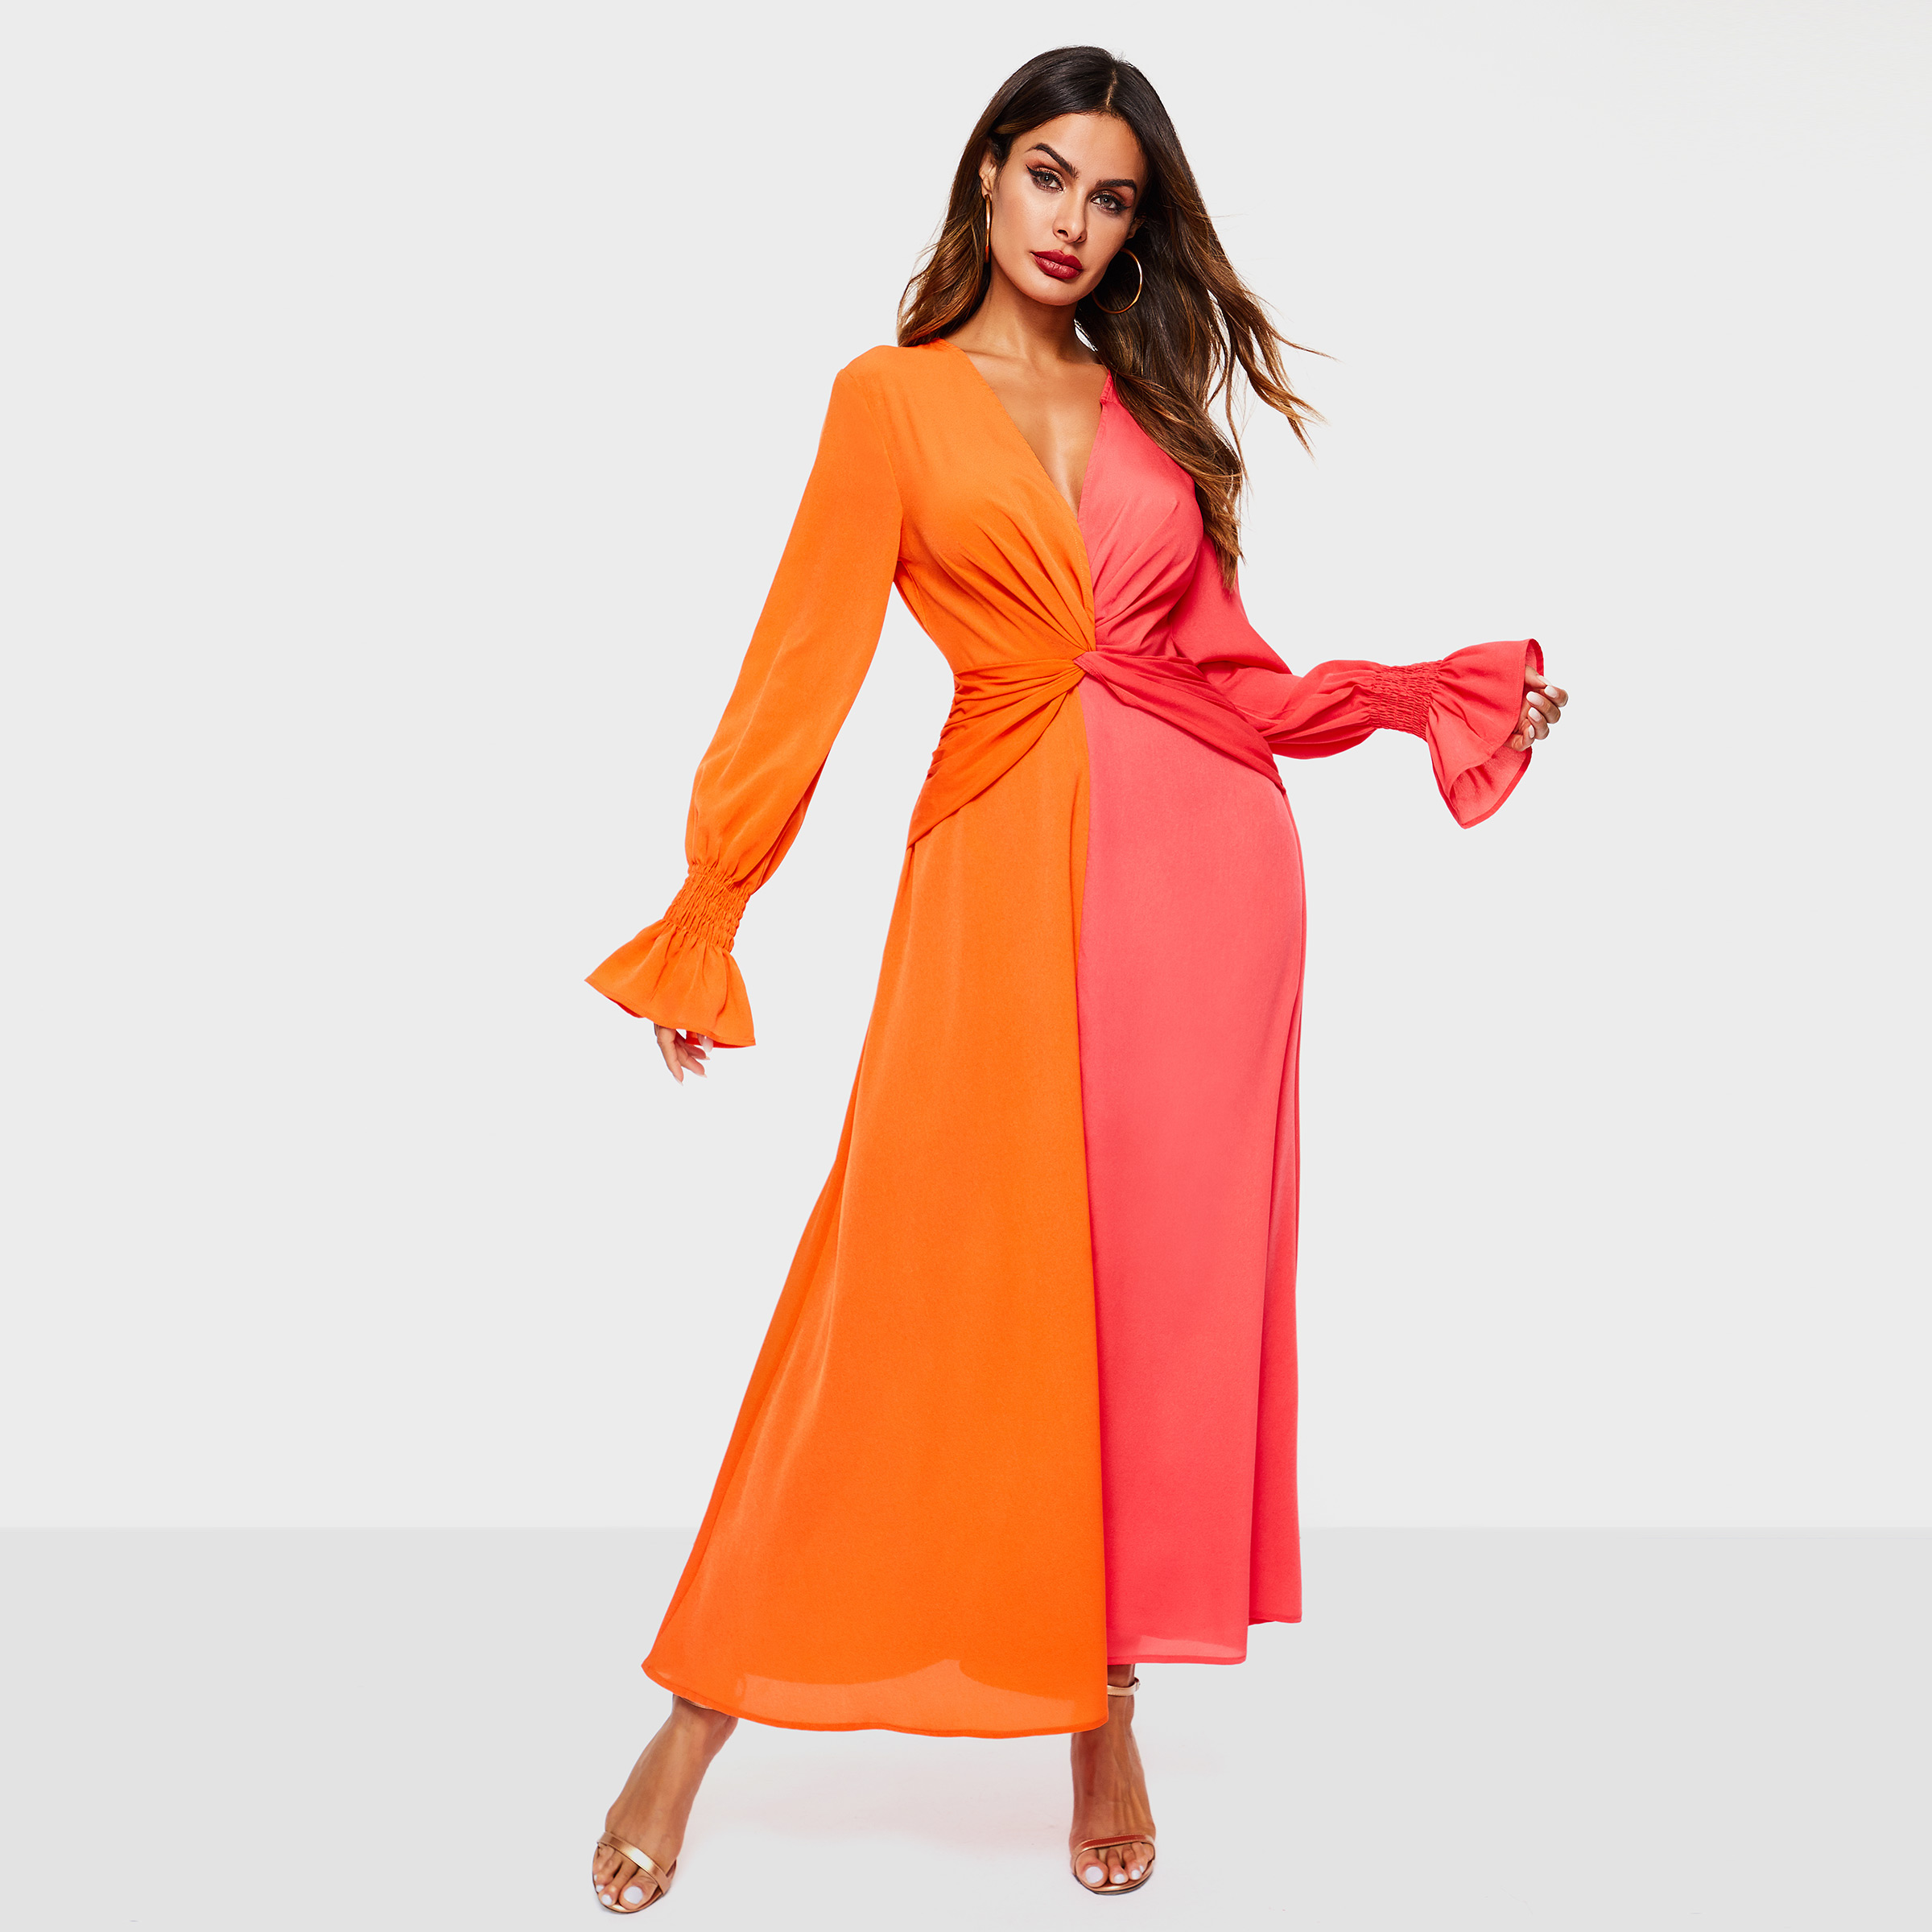 Women Color Block Long Sleeve Party Maxi Dresses Sexy Open Back V Neck Yellow Female Fashion